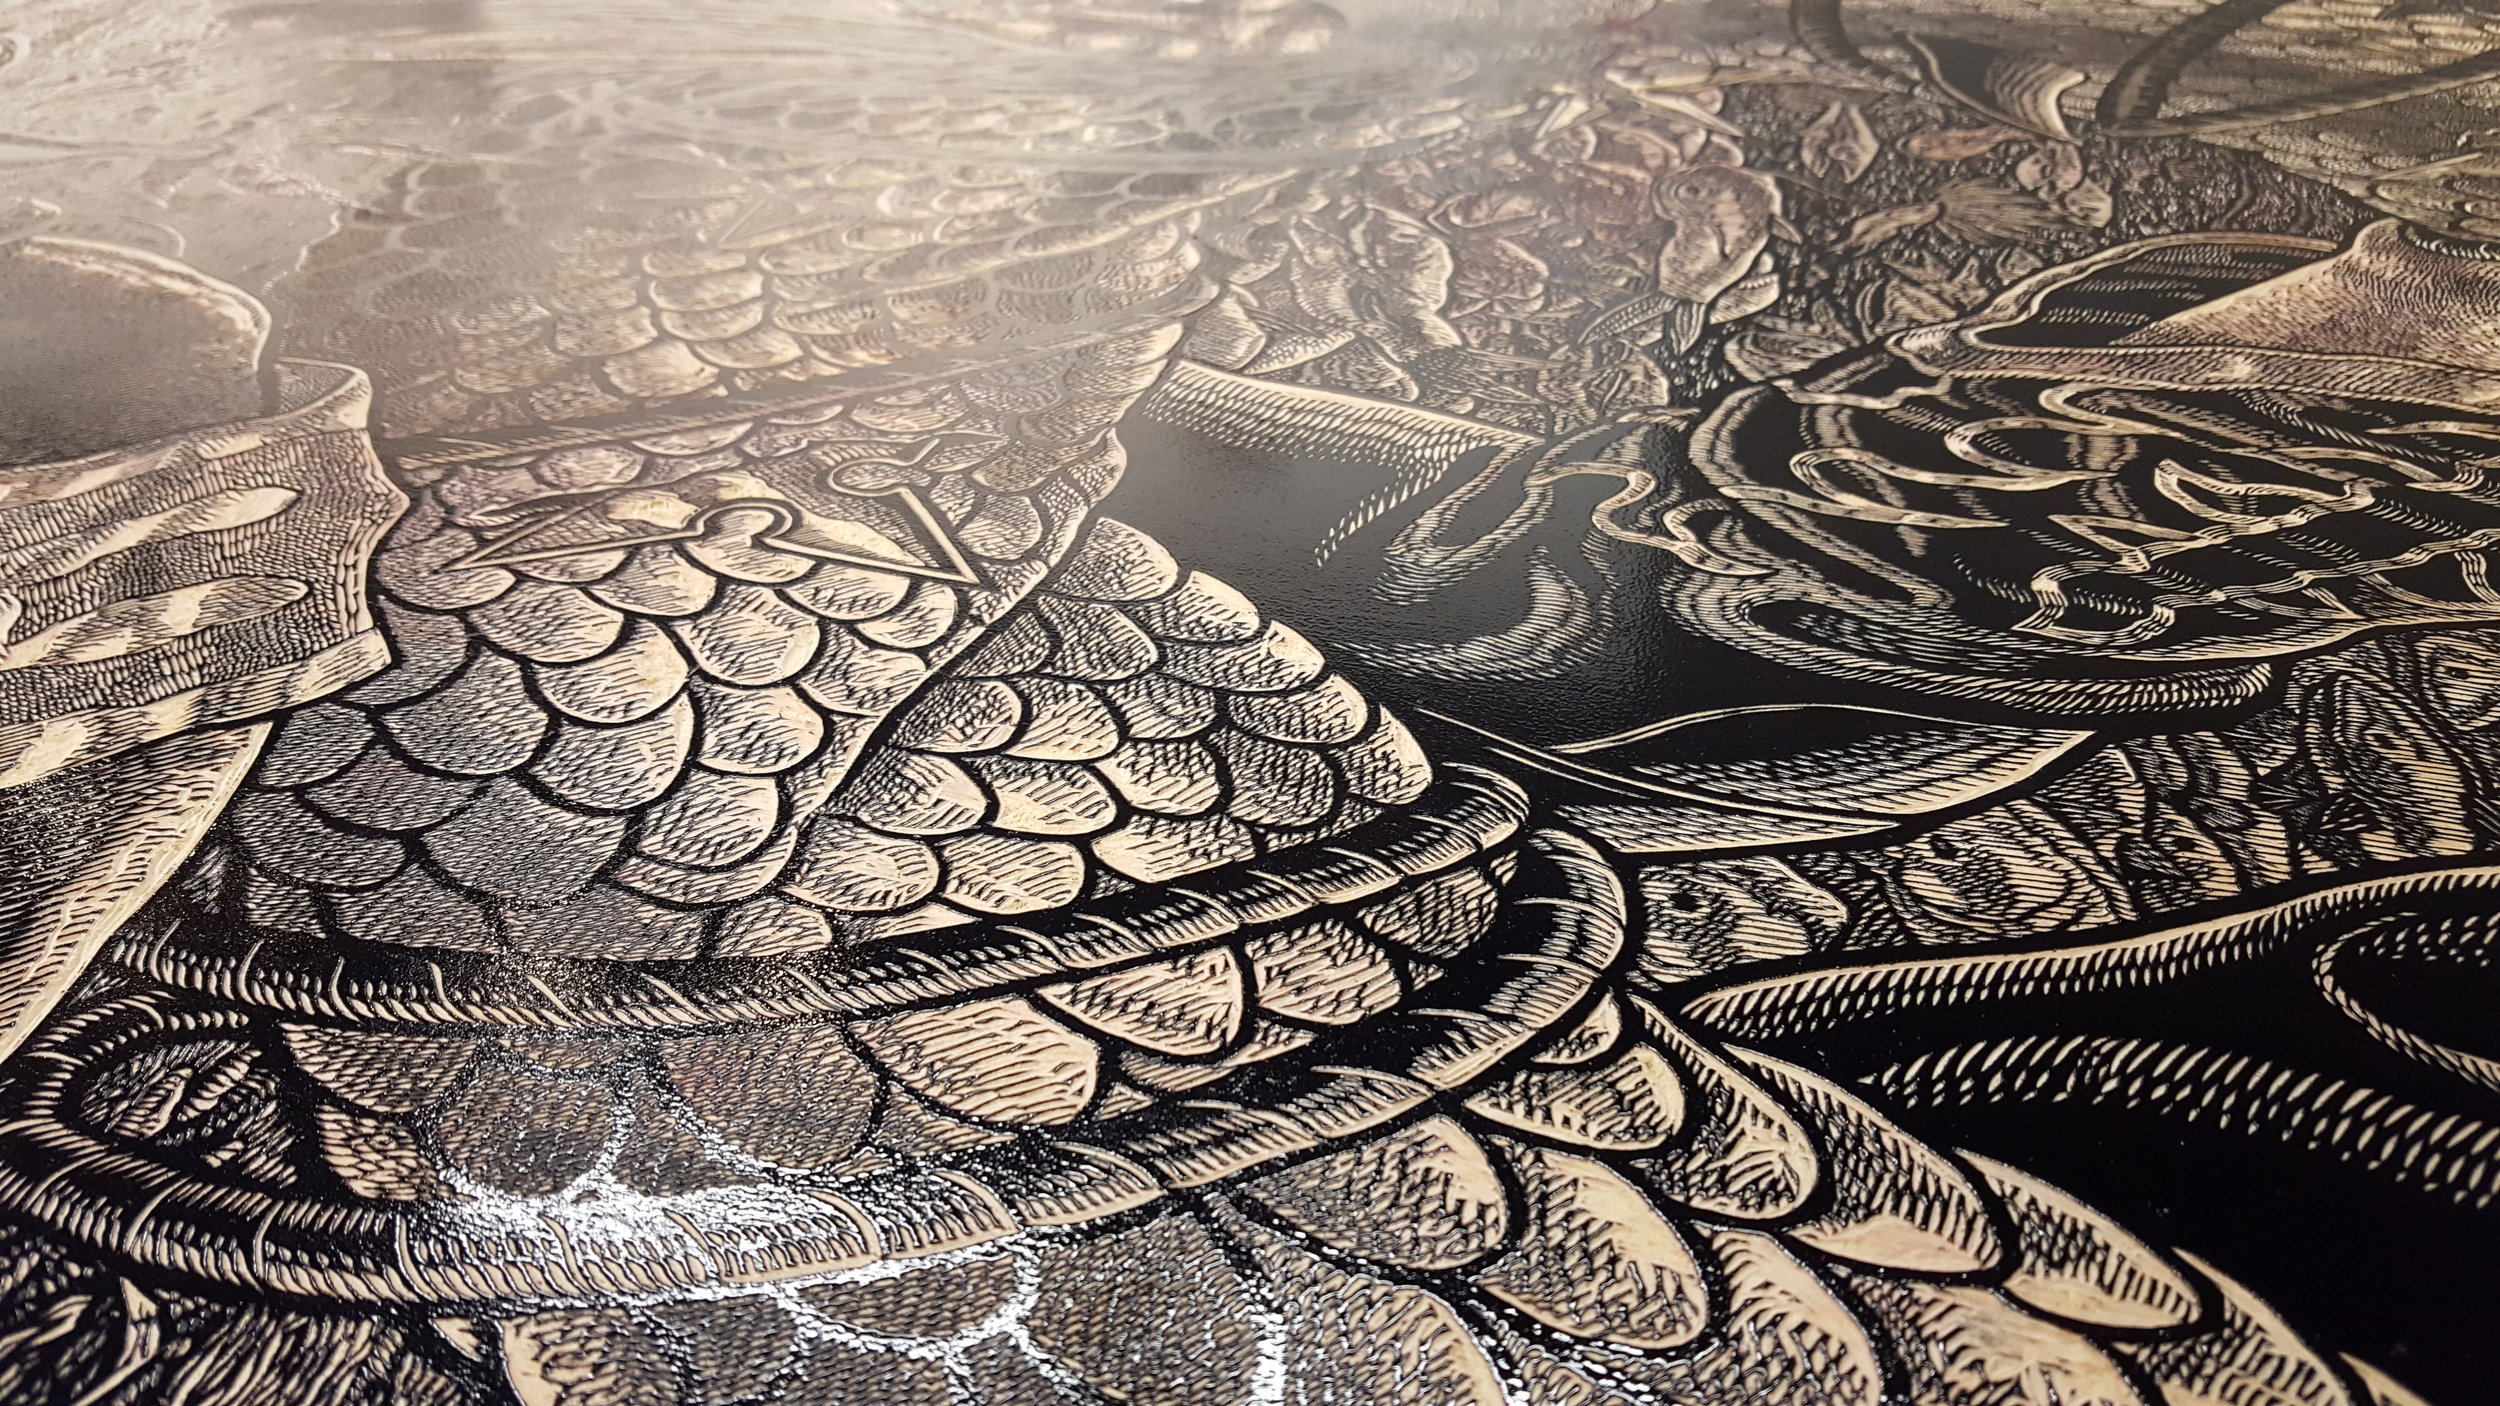 Detail of the inked block